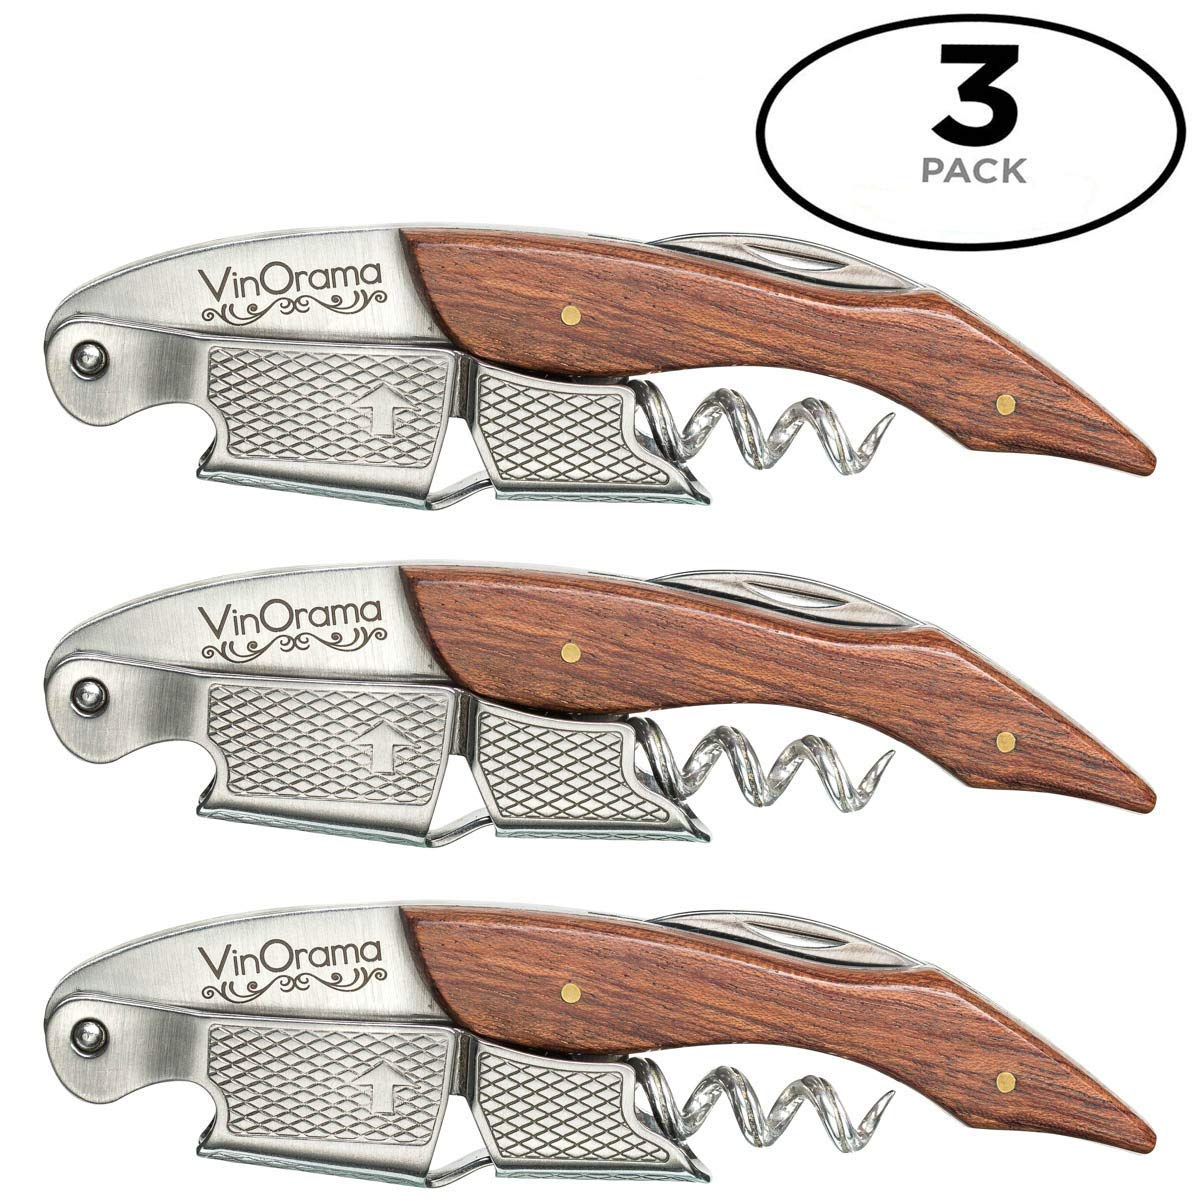 VinOrama Waiters Corkscrew Rosewood 3-in-1 Wine Opener, Beer Bottle Opener and Foil Cutter, The Best Choice of Professional Waiters and Bartenders Around the Globe